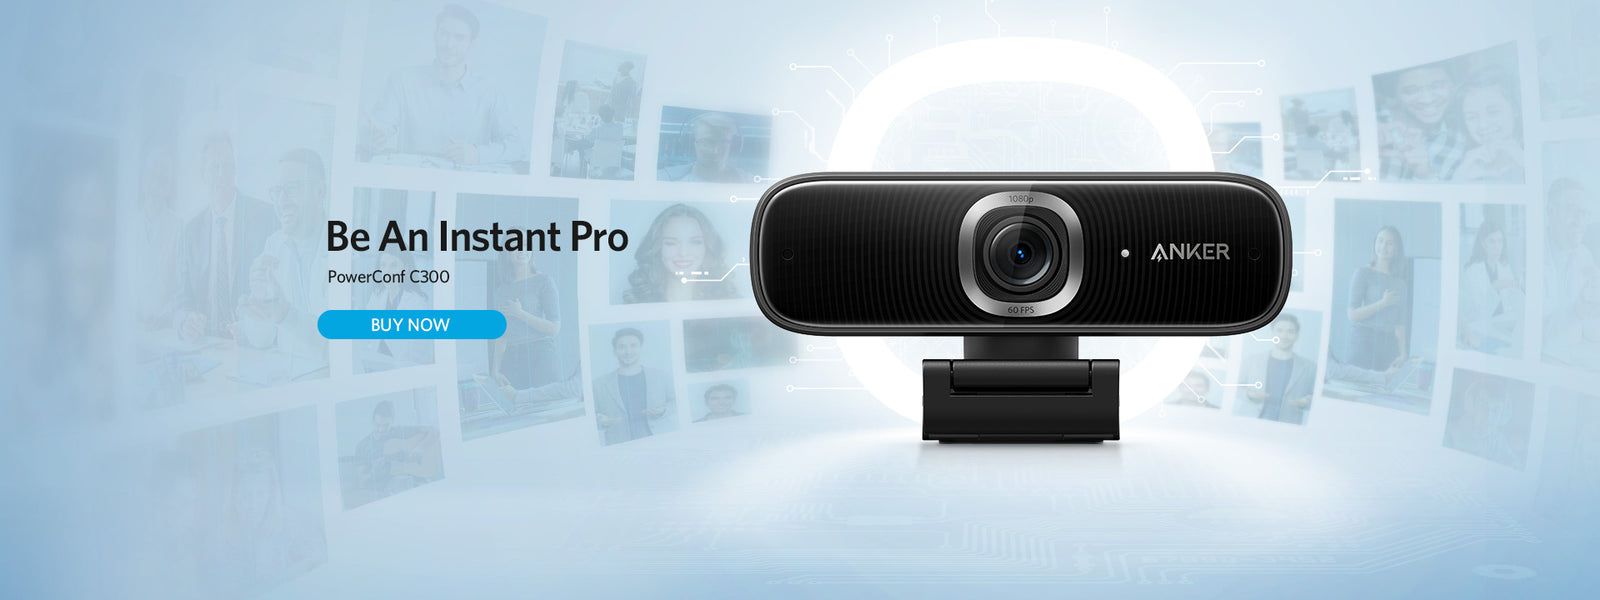 Anker Coupon Codes - PowerConf C300 @ just $129.99